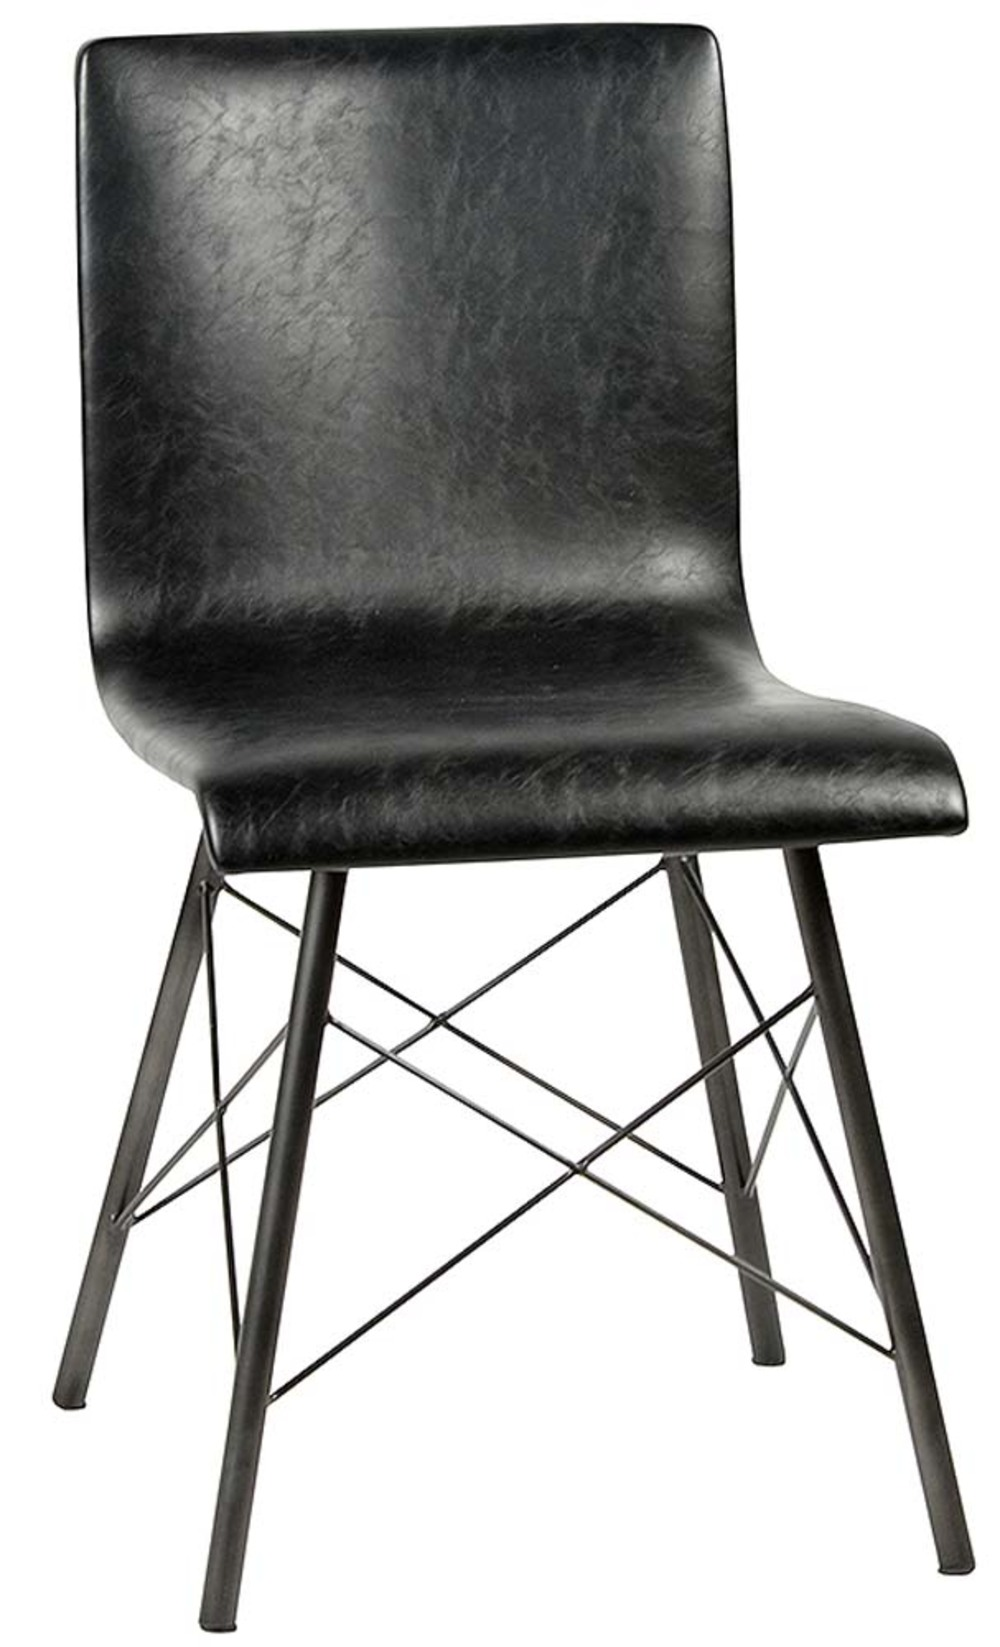 Dovetail Furniture - Messina Dining Chair